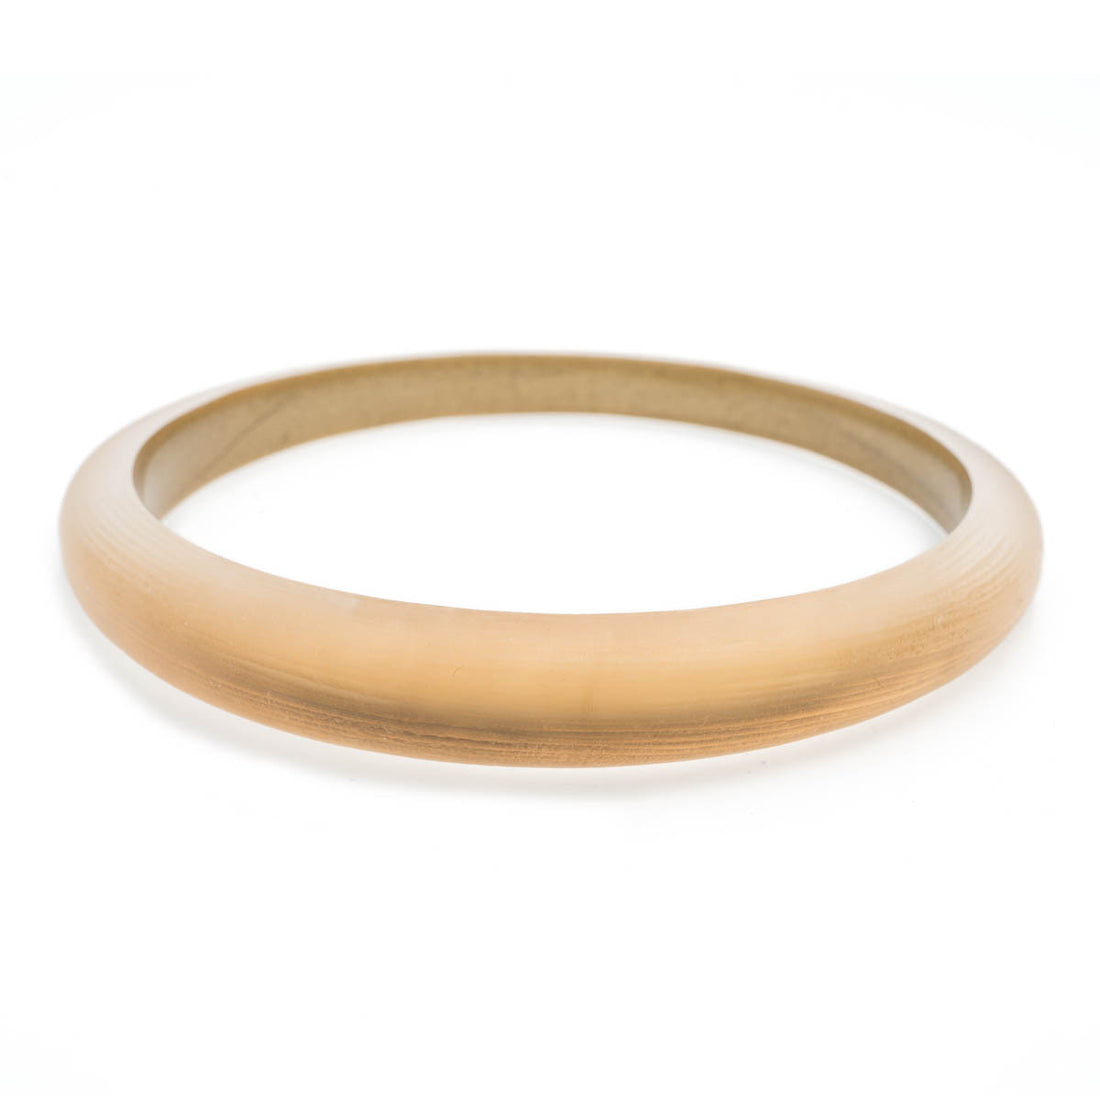 ALEXIS BITTAR GOLD SKINNY TAPERED BANGLE